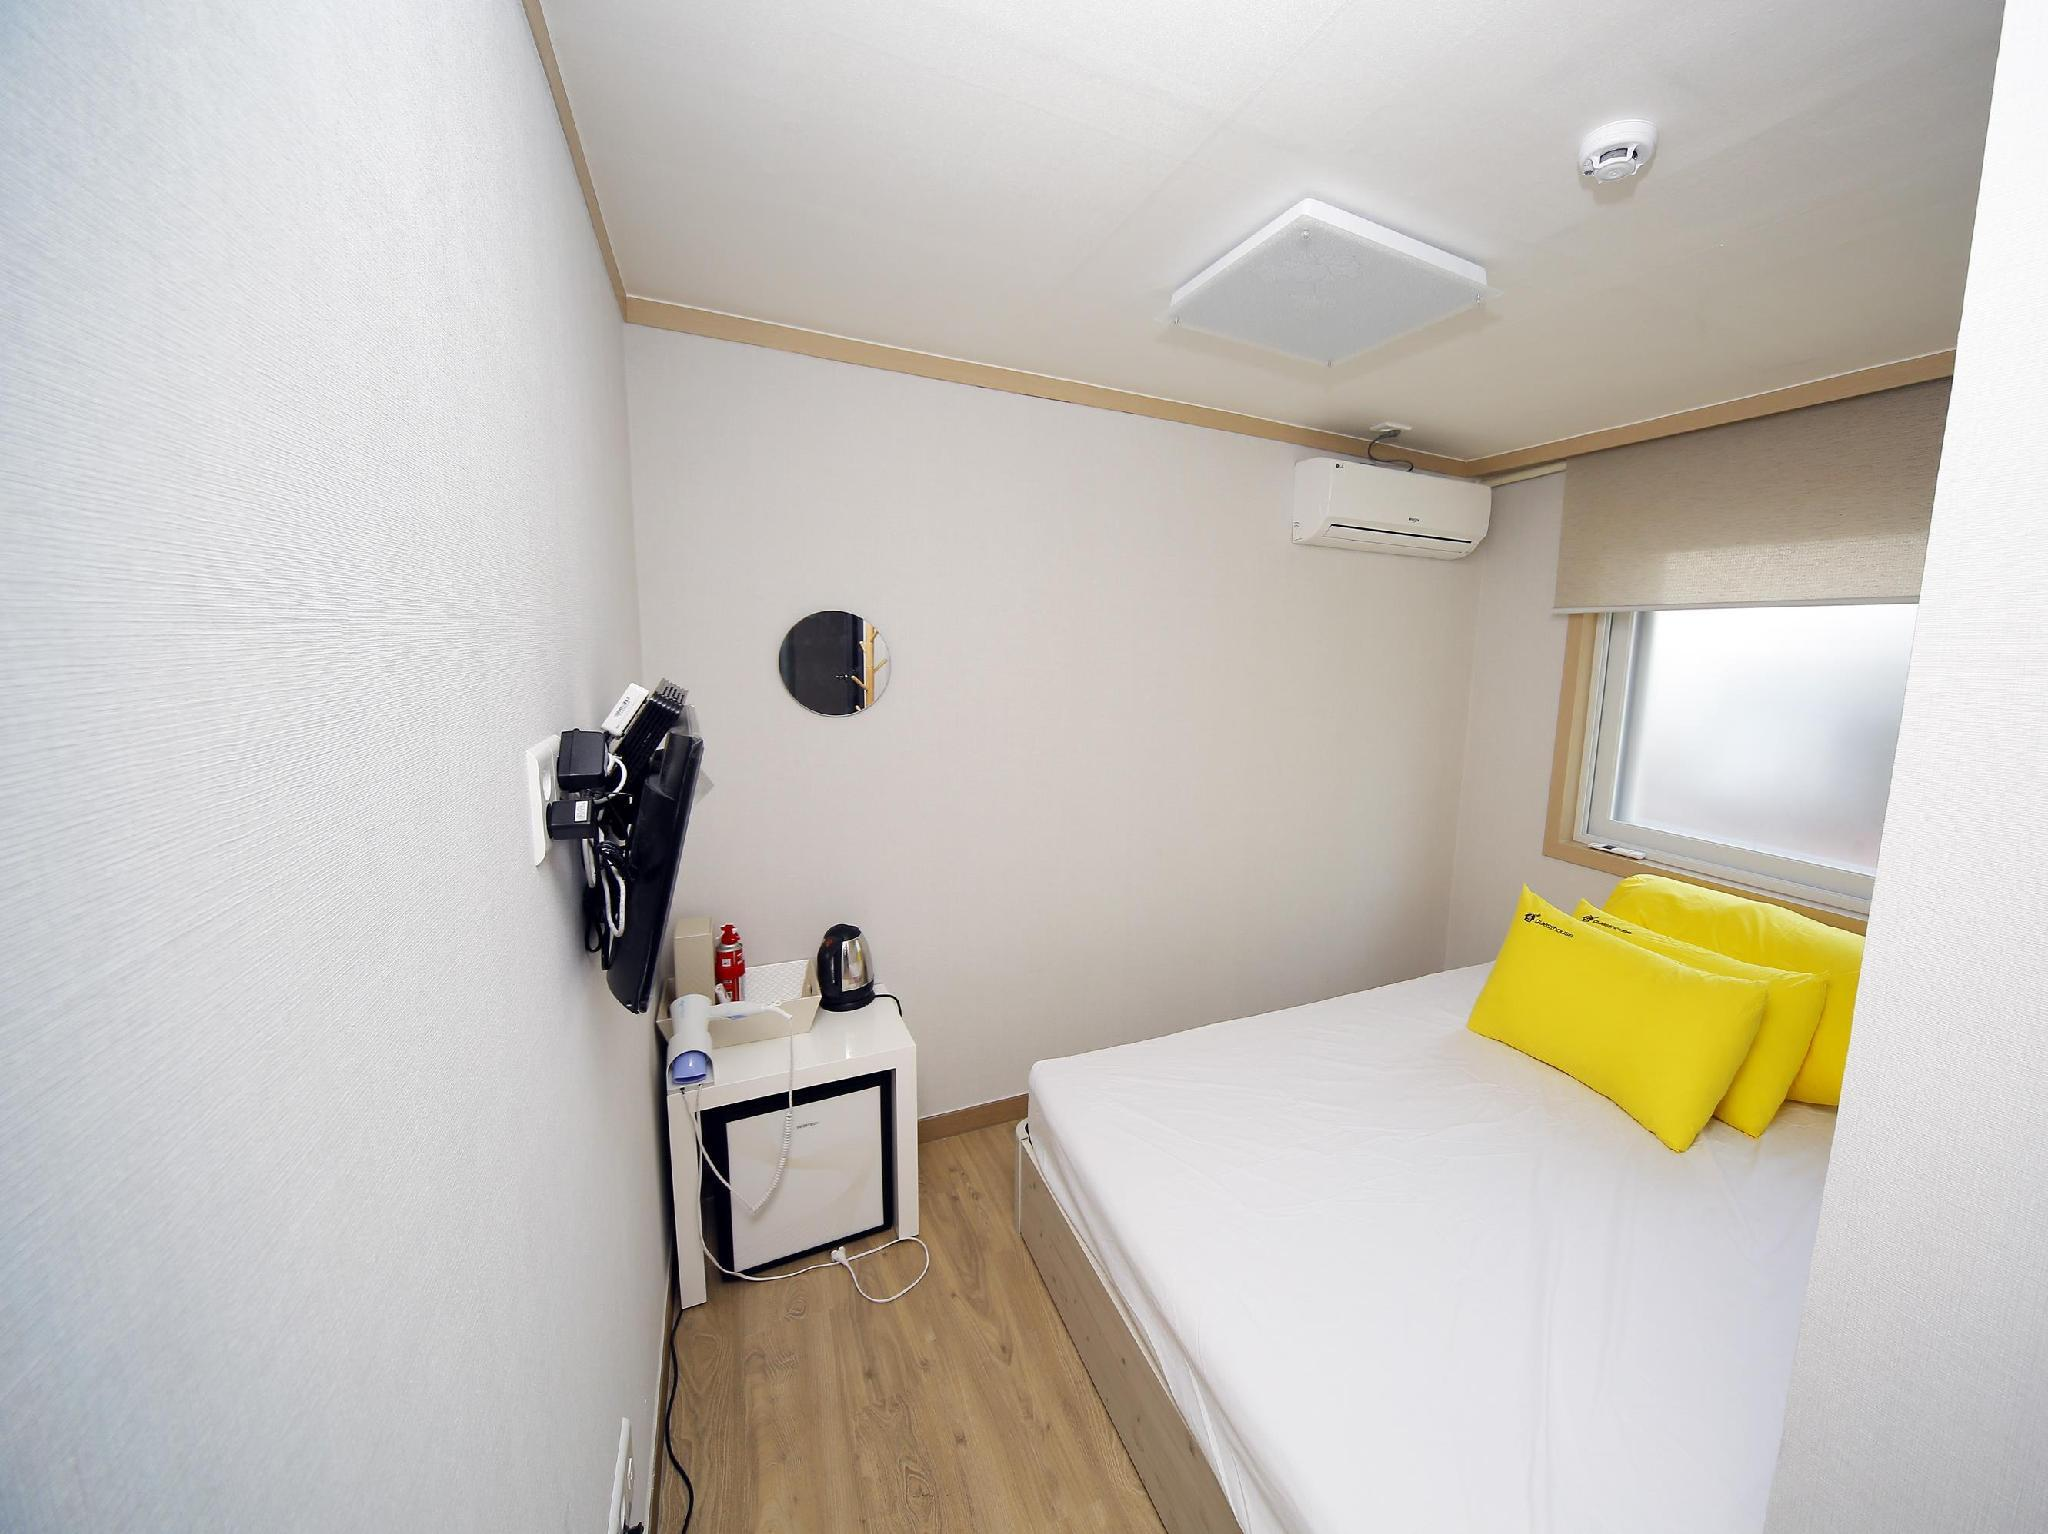 Kyung Hee University 24 Guesthouse